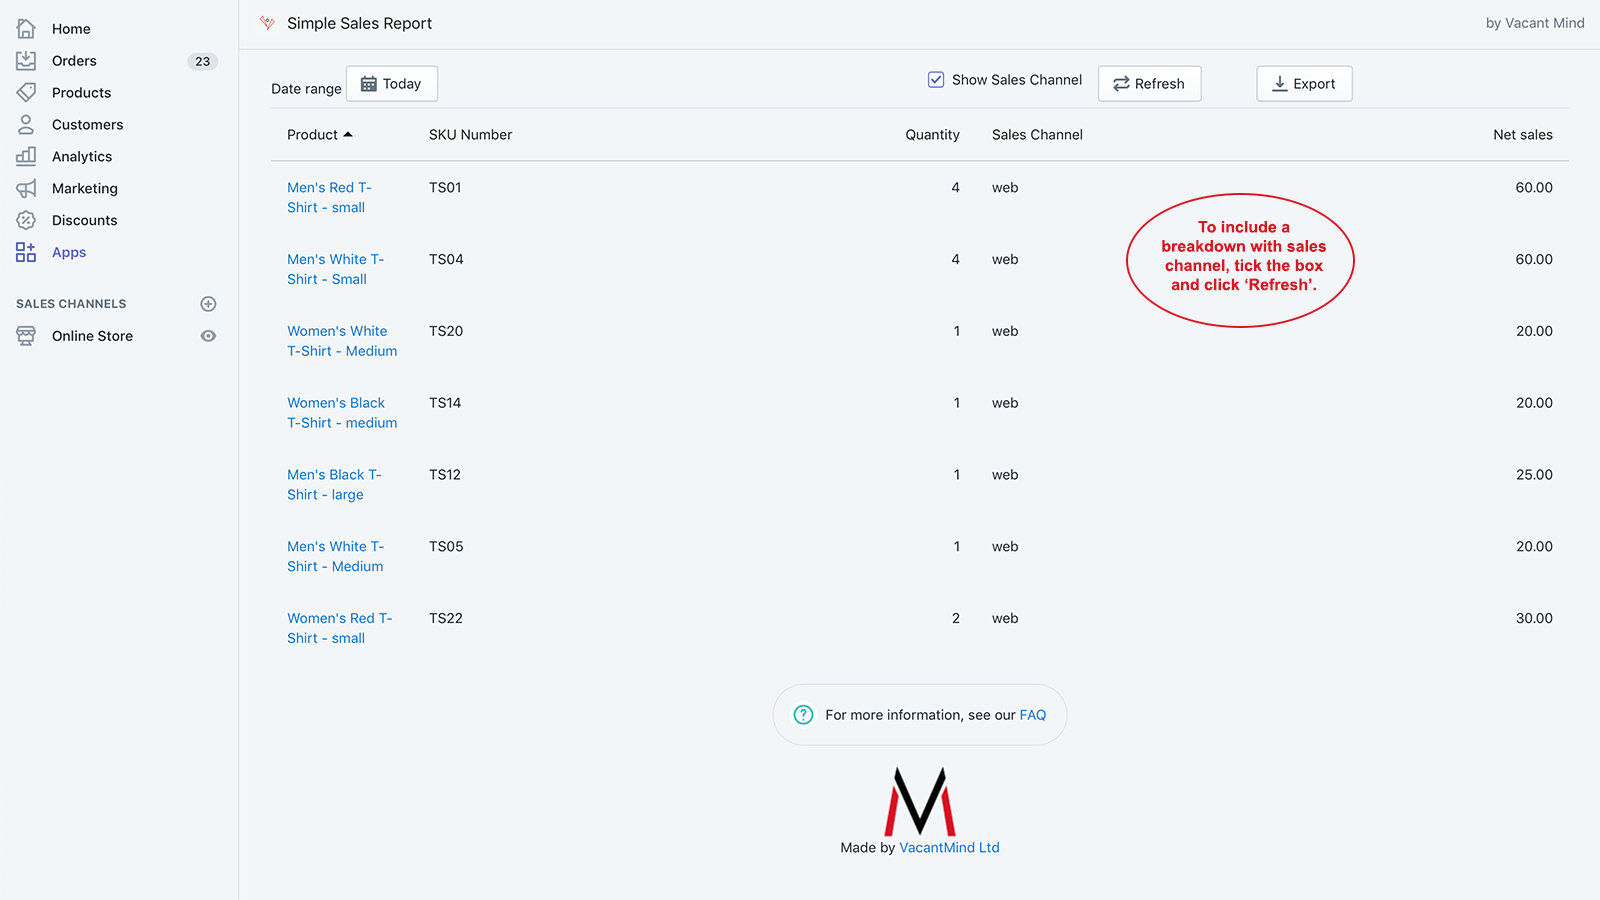 Simple Sales Insight - Today with Sales Channel by Vacant Mind